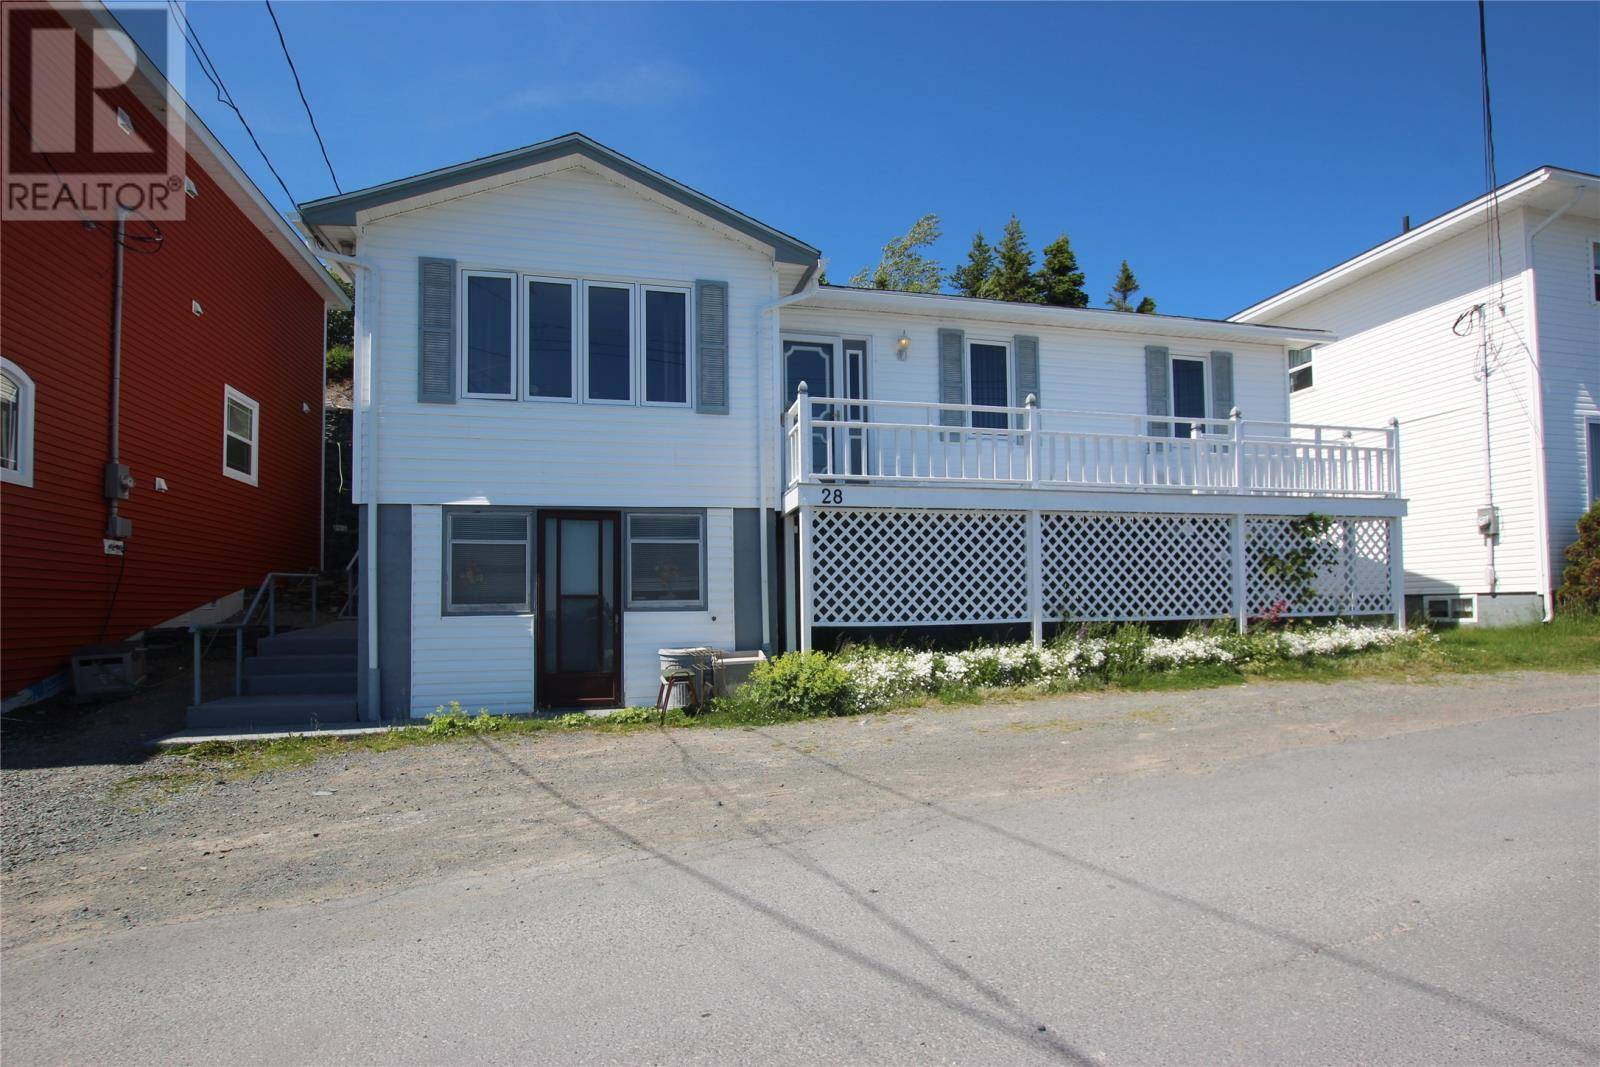 House for sale at 28 Spoon Cove Rd Upper Island Cove Newfoundland - MLS: 1211720